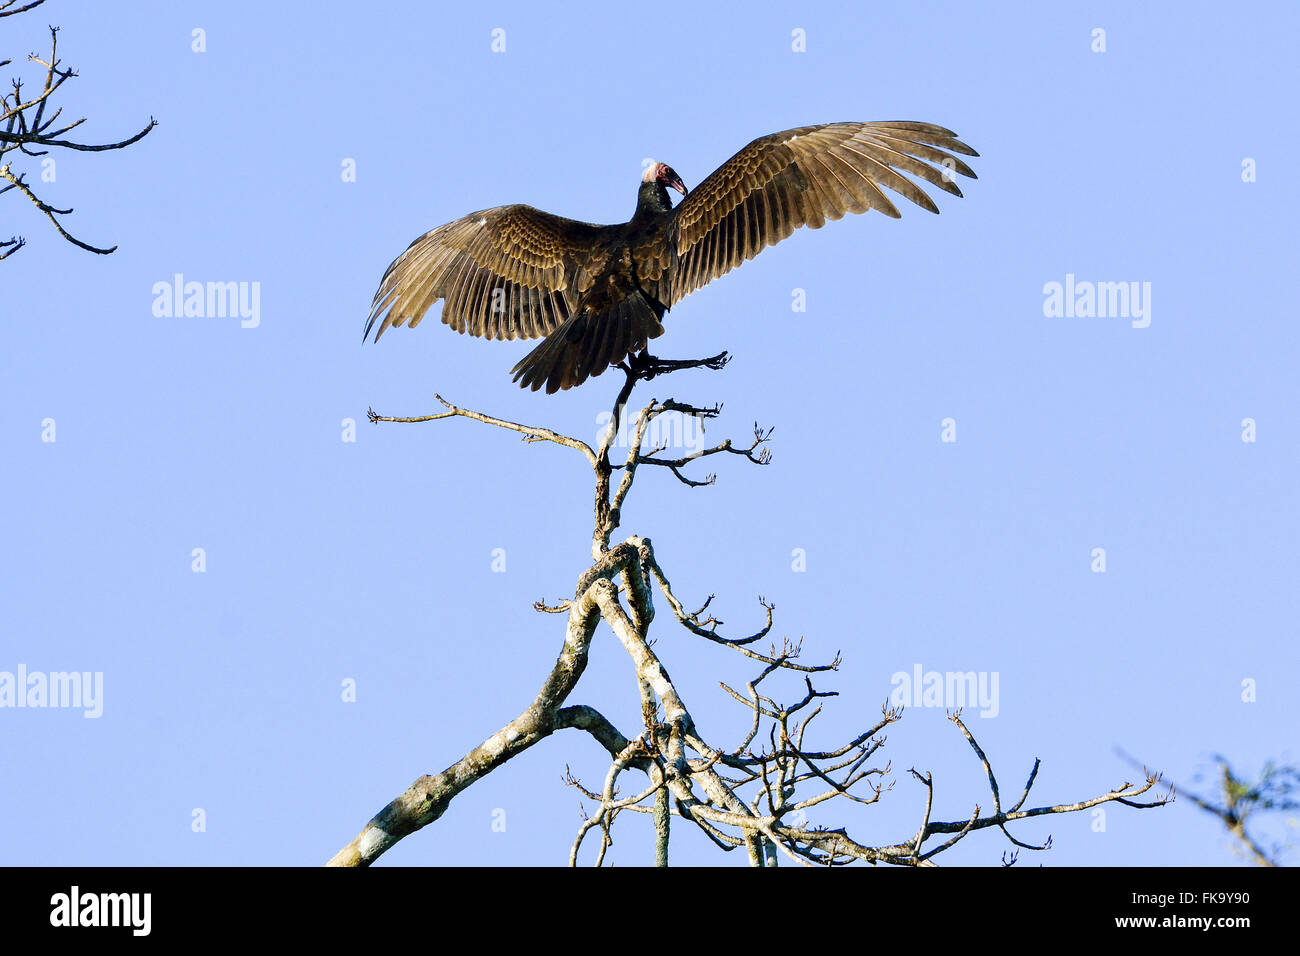 Vulture with open wings to sunbathe - Stock Image